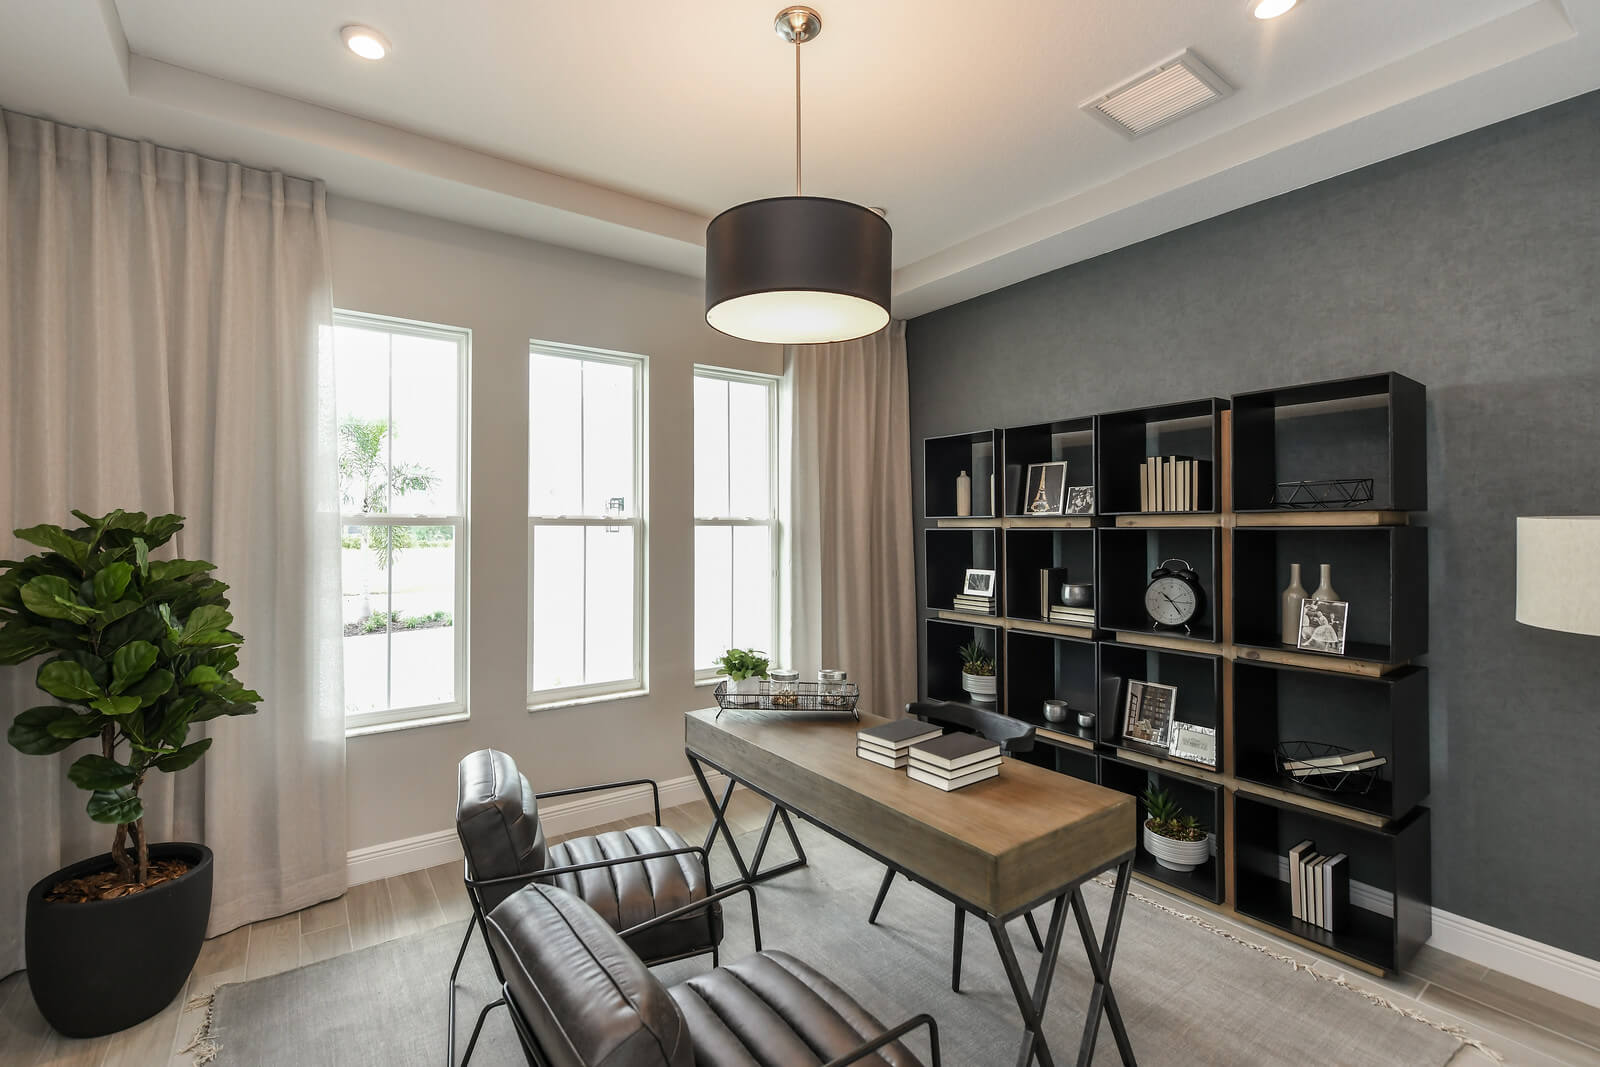 New Tampa Single Family Home Quick Possession Asher in Worthington, located at 4641 Antrim Drive, Sarasota, FL 34240 Built By Cardel Homes Tampa